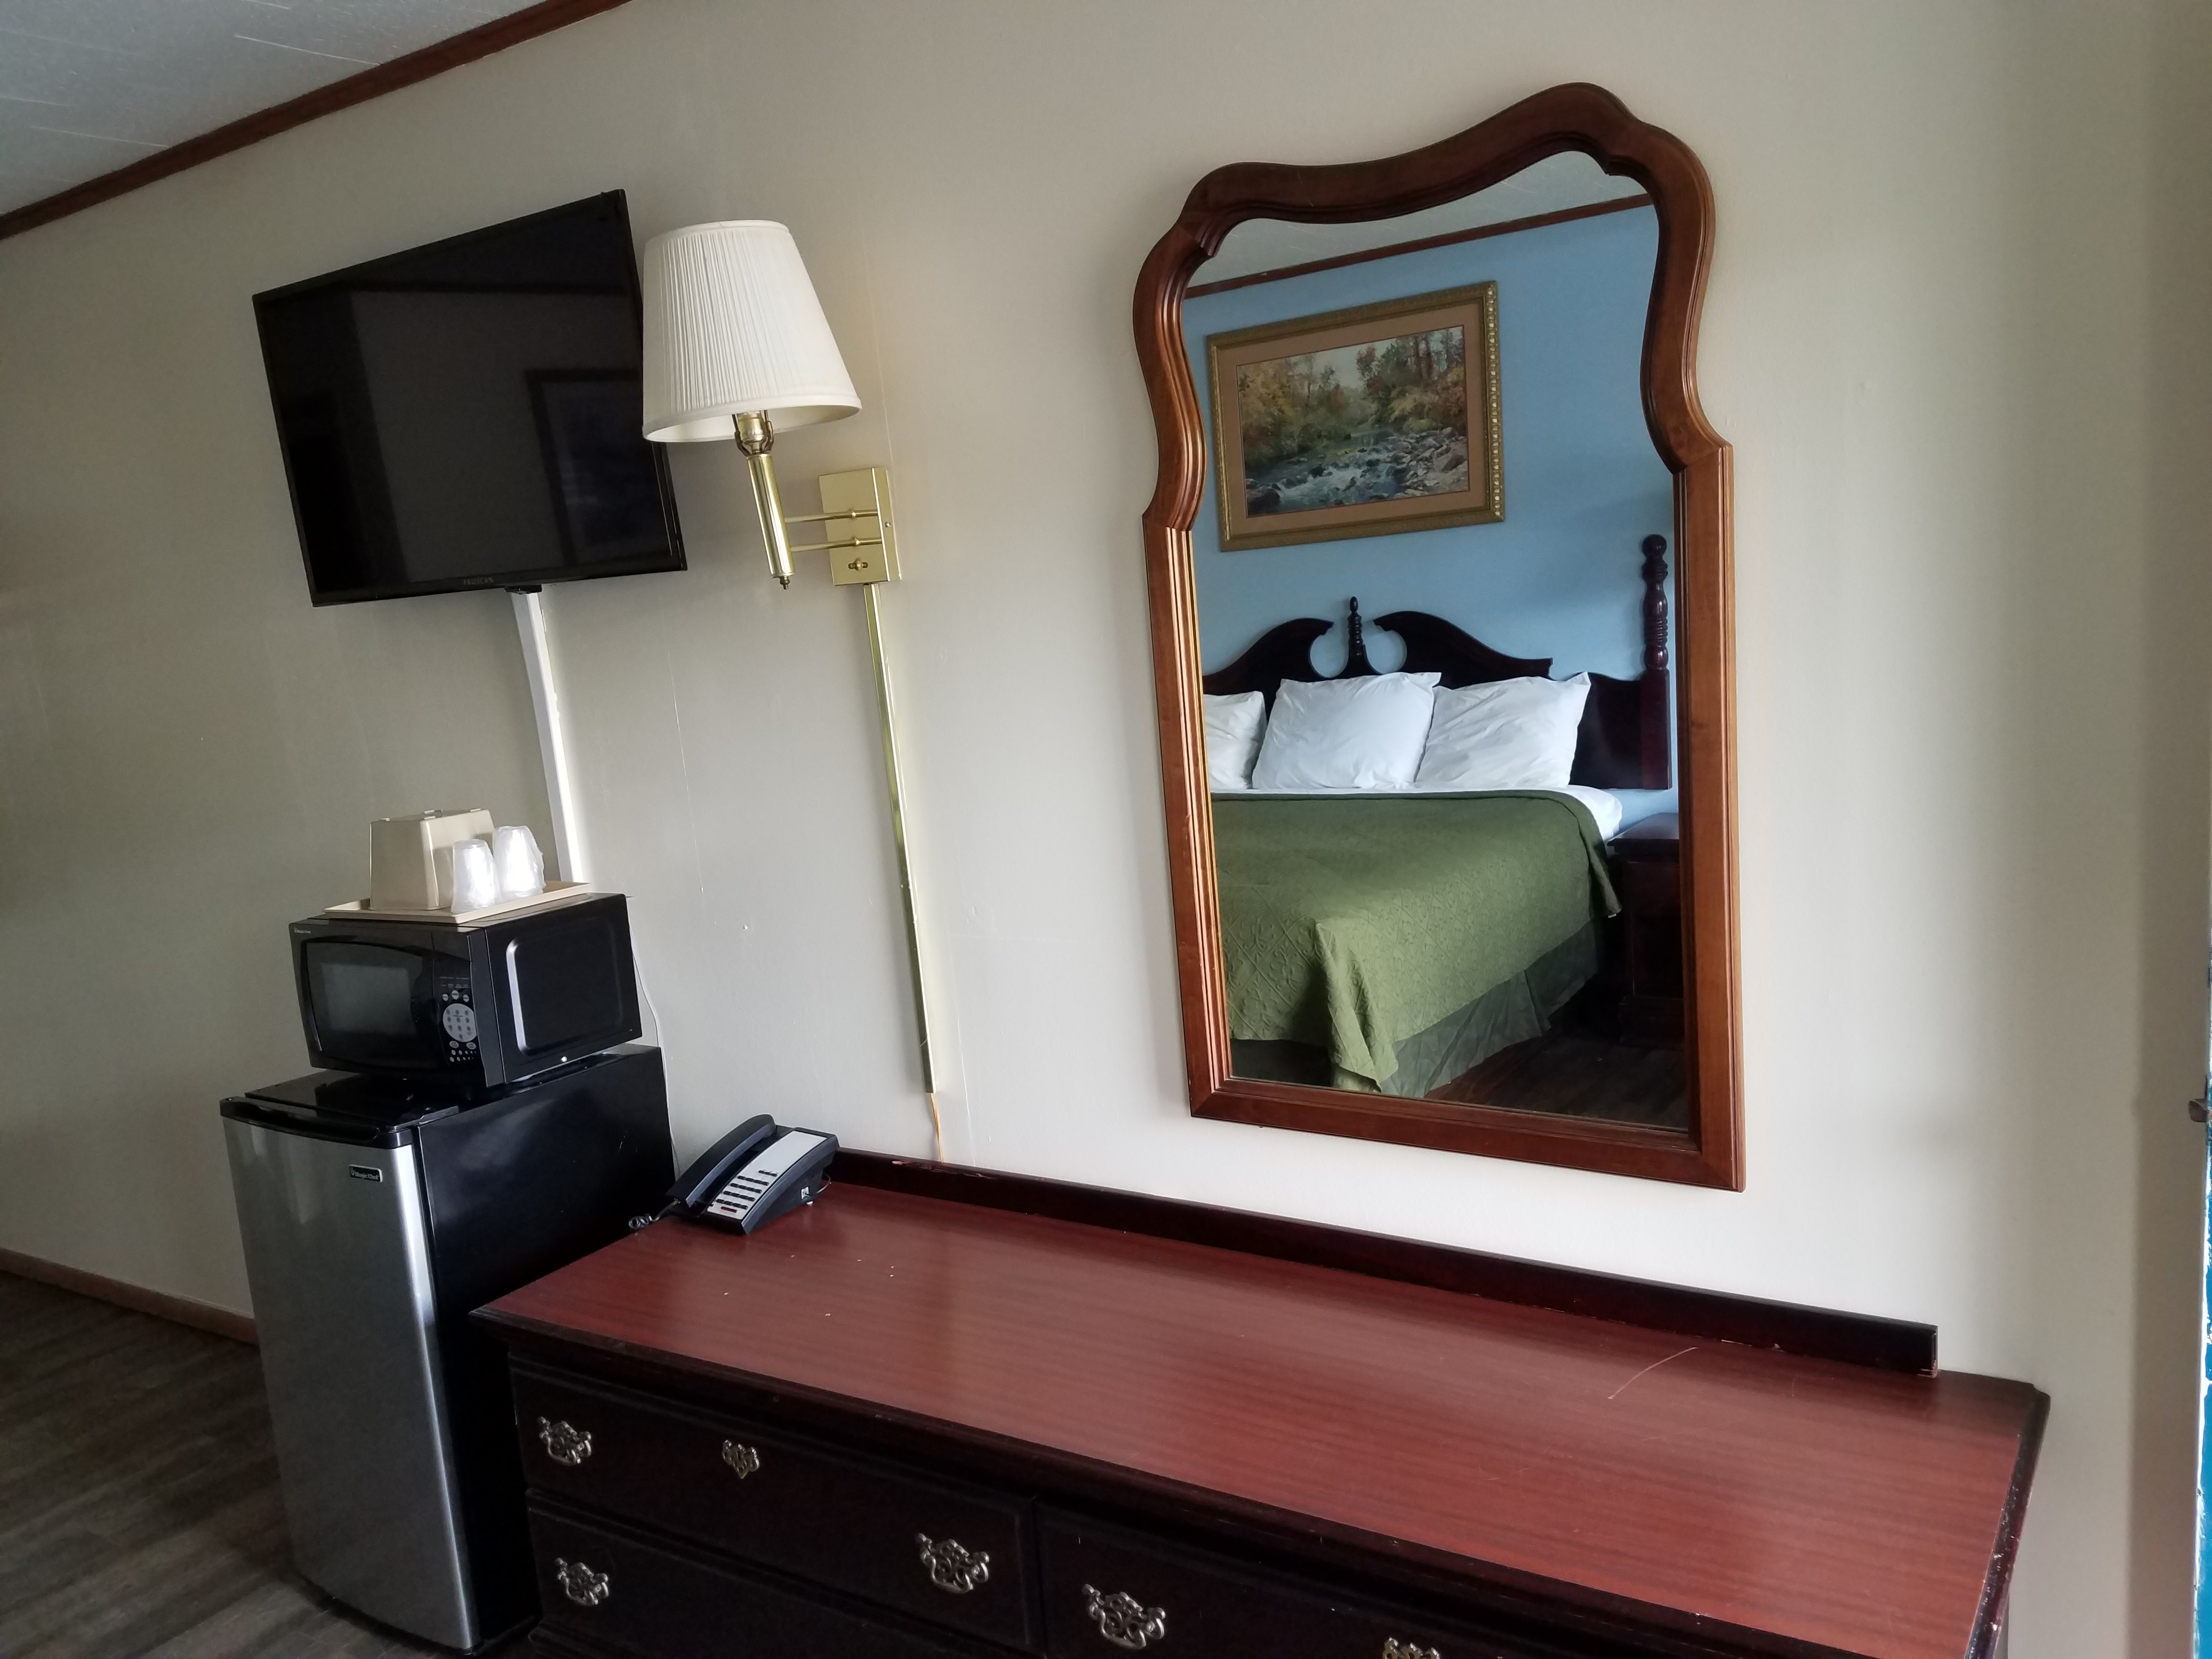 Pet Friendly Hotel  Budget Location Affordable Newly Remodeled Hotels in Franklin North Carolina